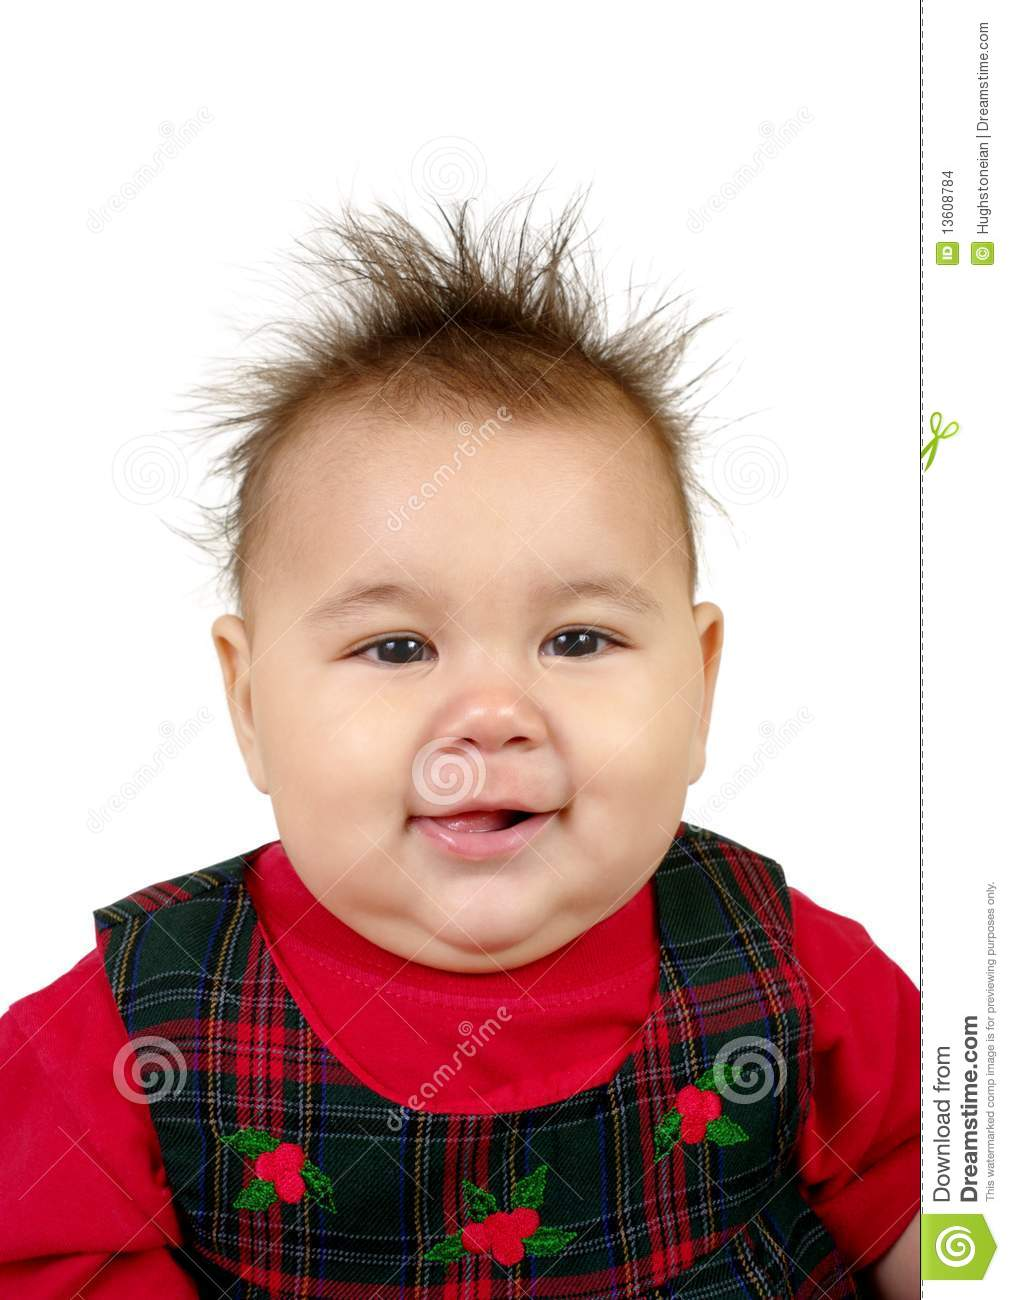 Kid With Spiky Hair Stock Photo Image Of Holiday Funny